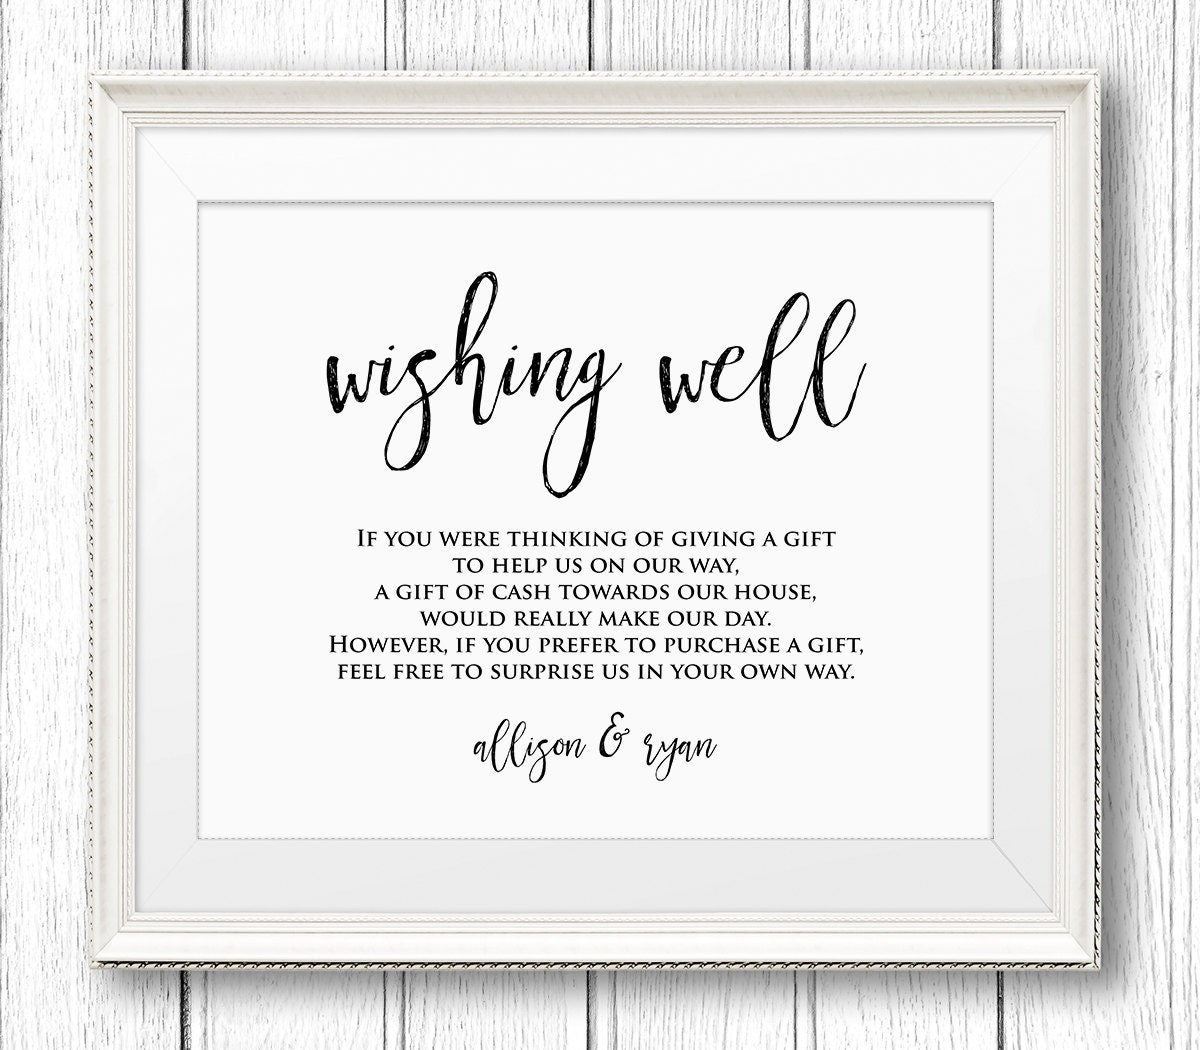 Wedding Wishing Well Sign Rustic Wedding Sign Template Instant Download Editable Text DIY